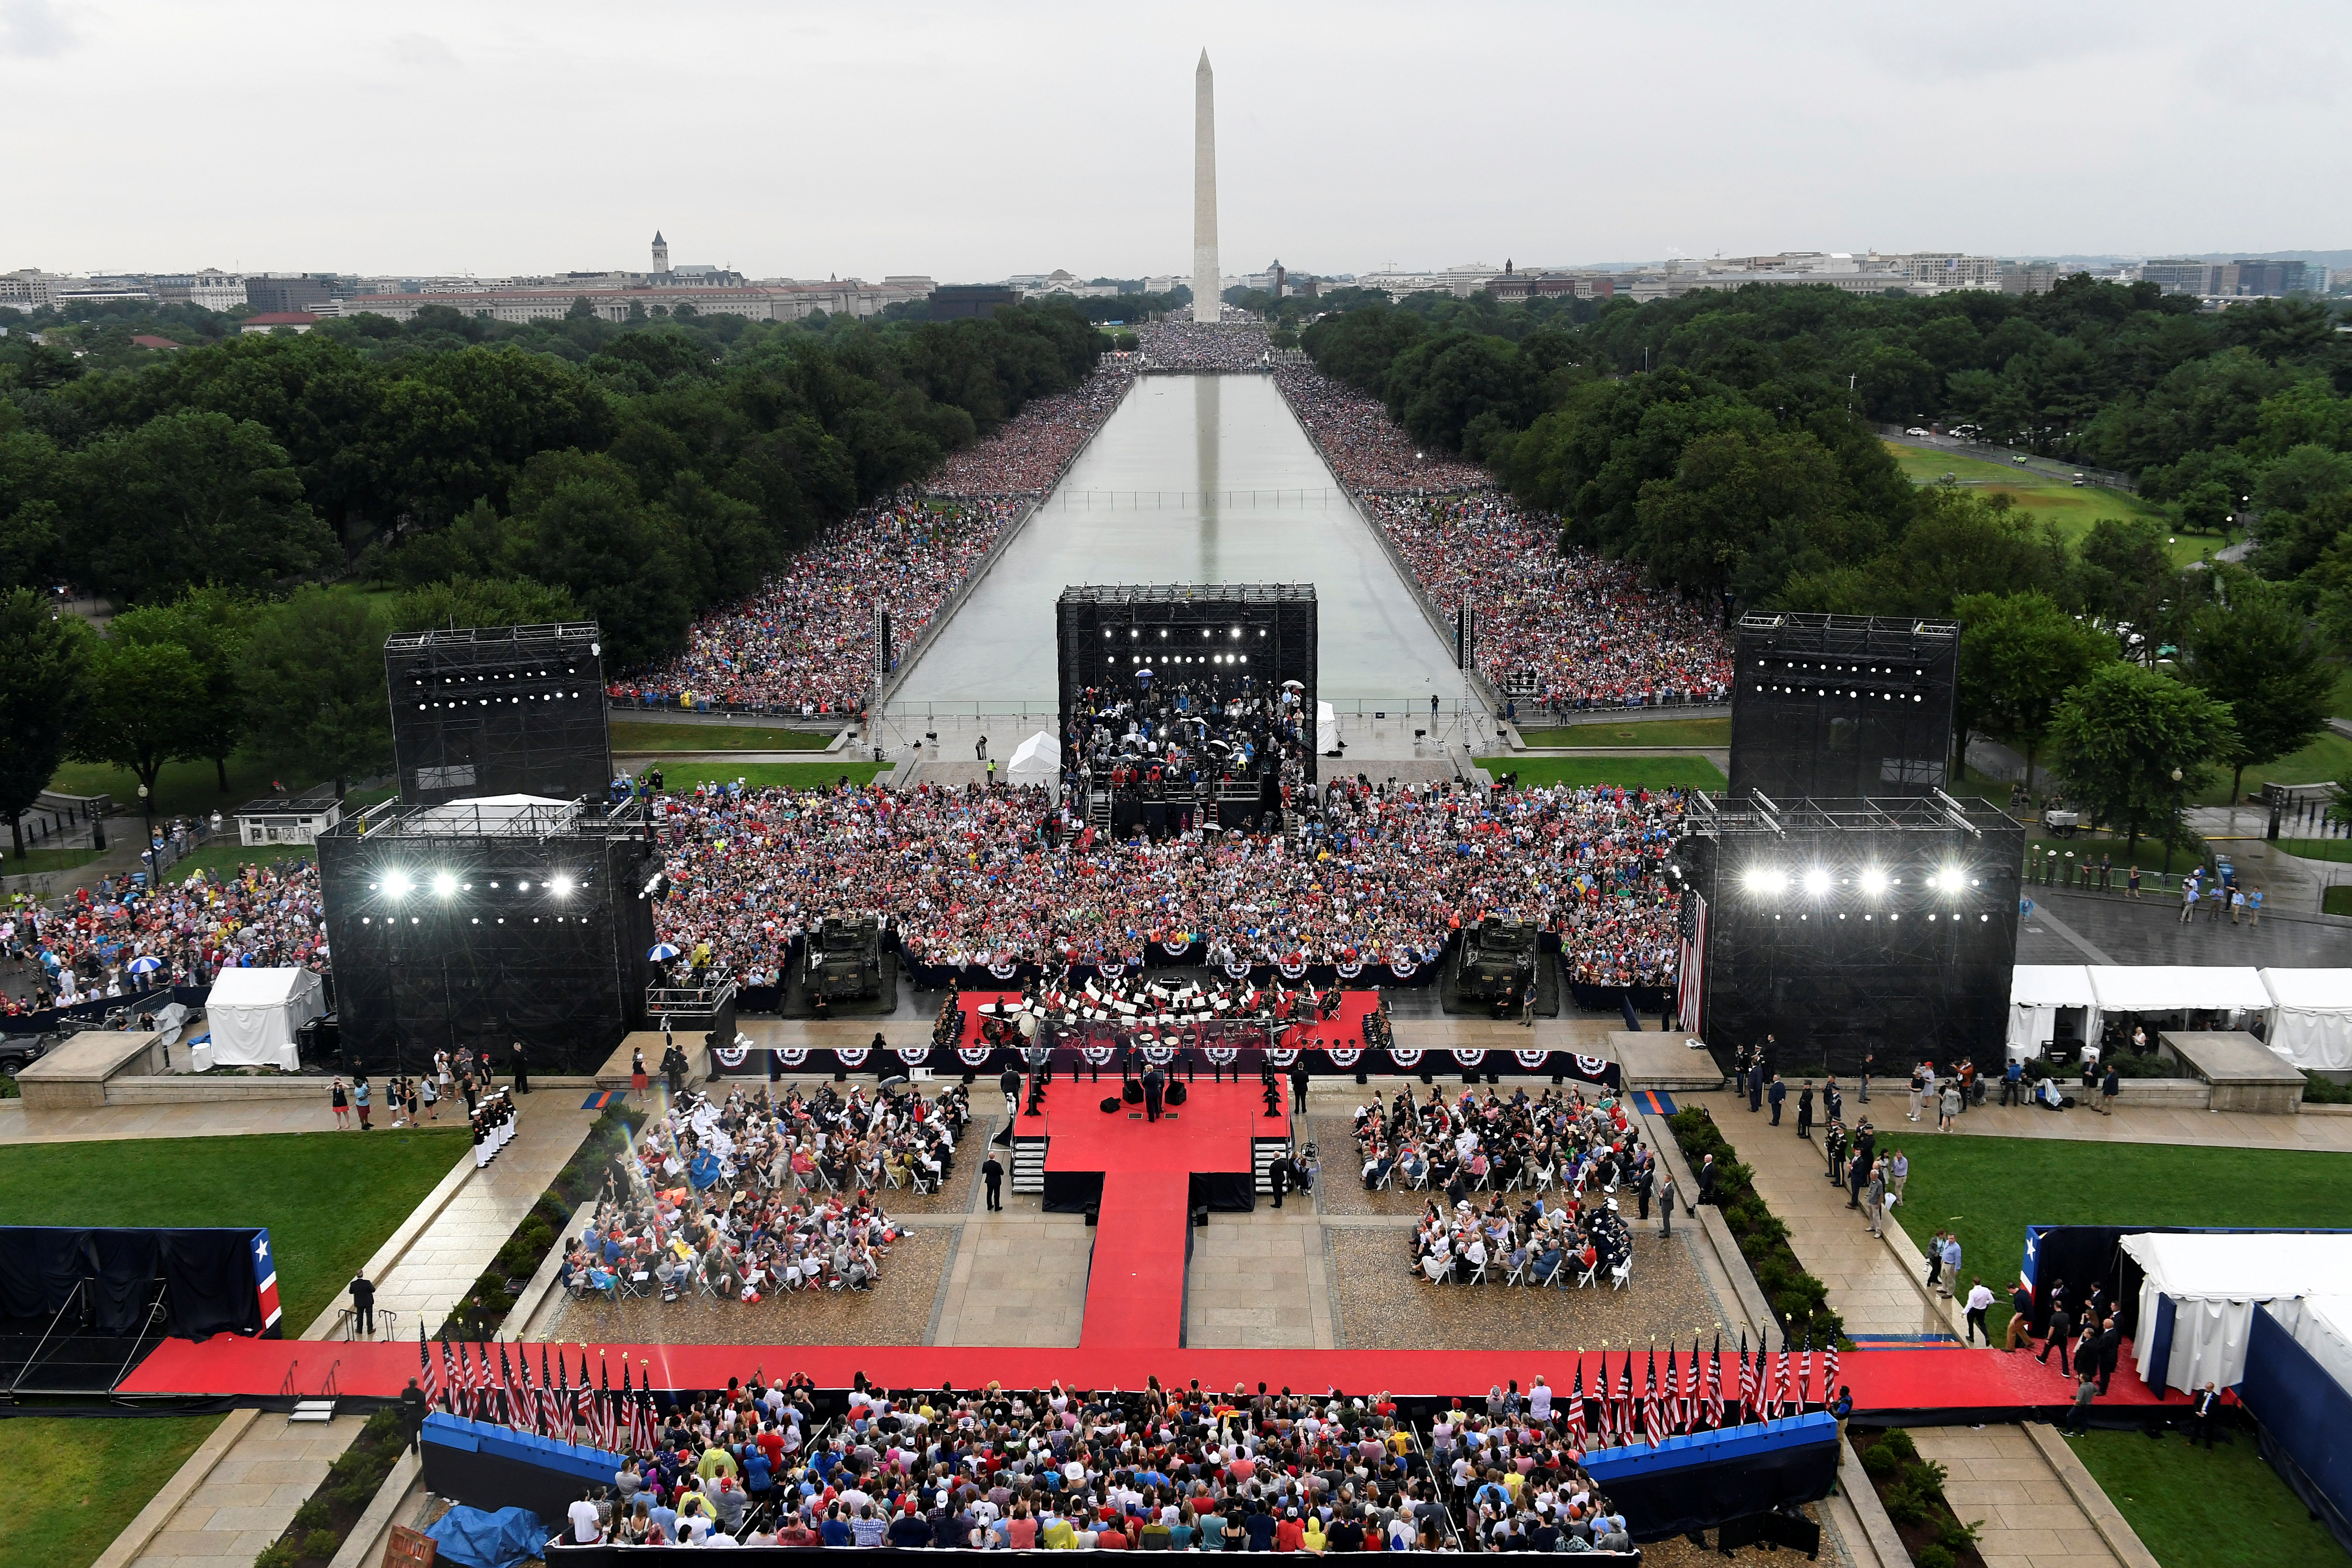 President Donald Trump speaks during an Independence Day celebration in front of the Lincoln Memorial in Washington, U.S., July 4, 2019. (Susan Walsh/Pool via REUTERS)